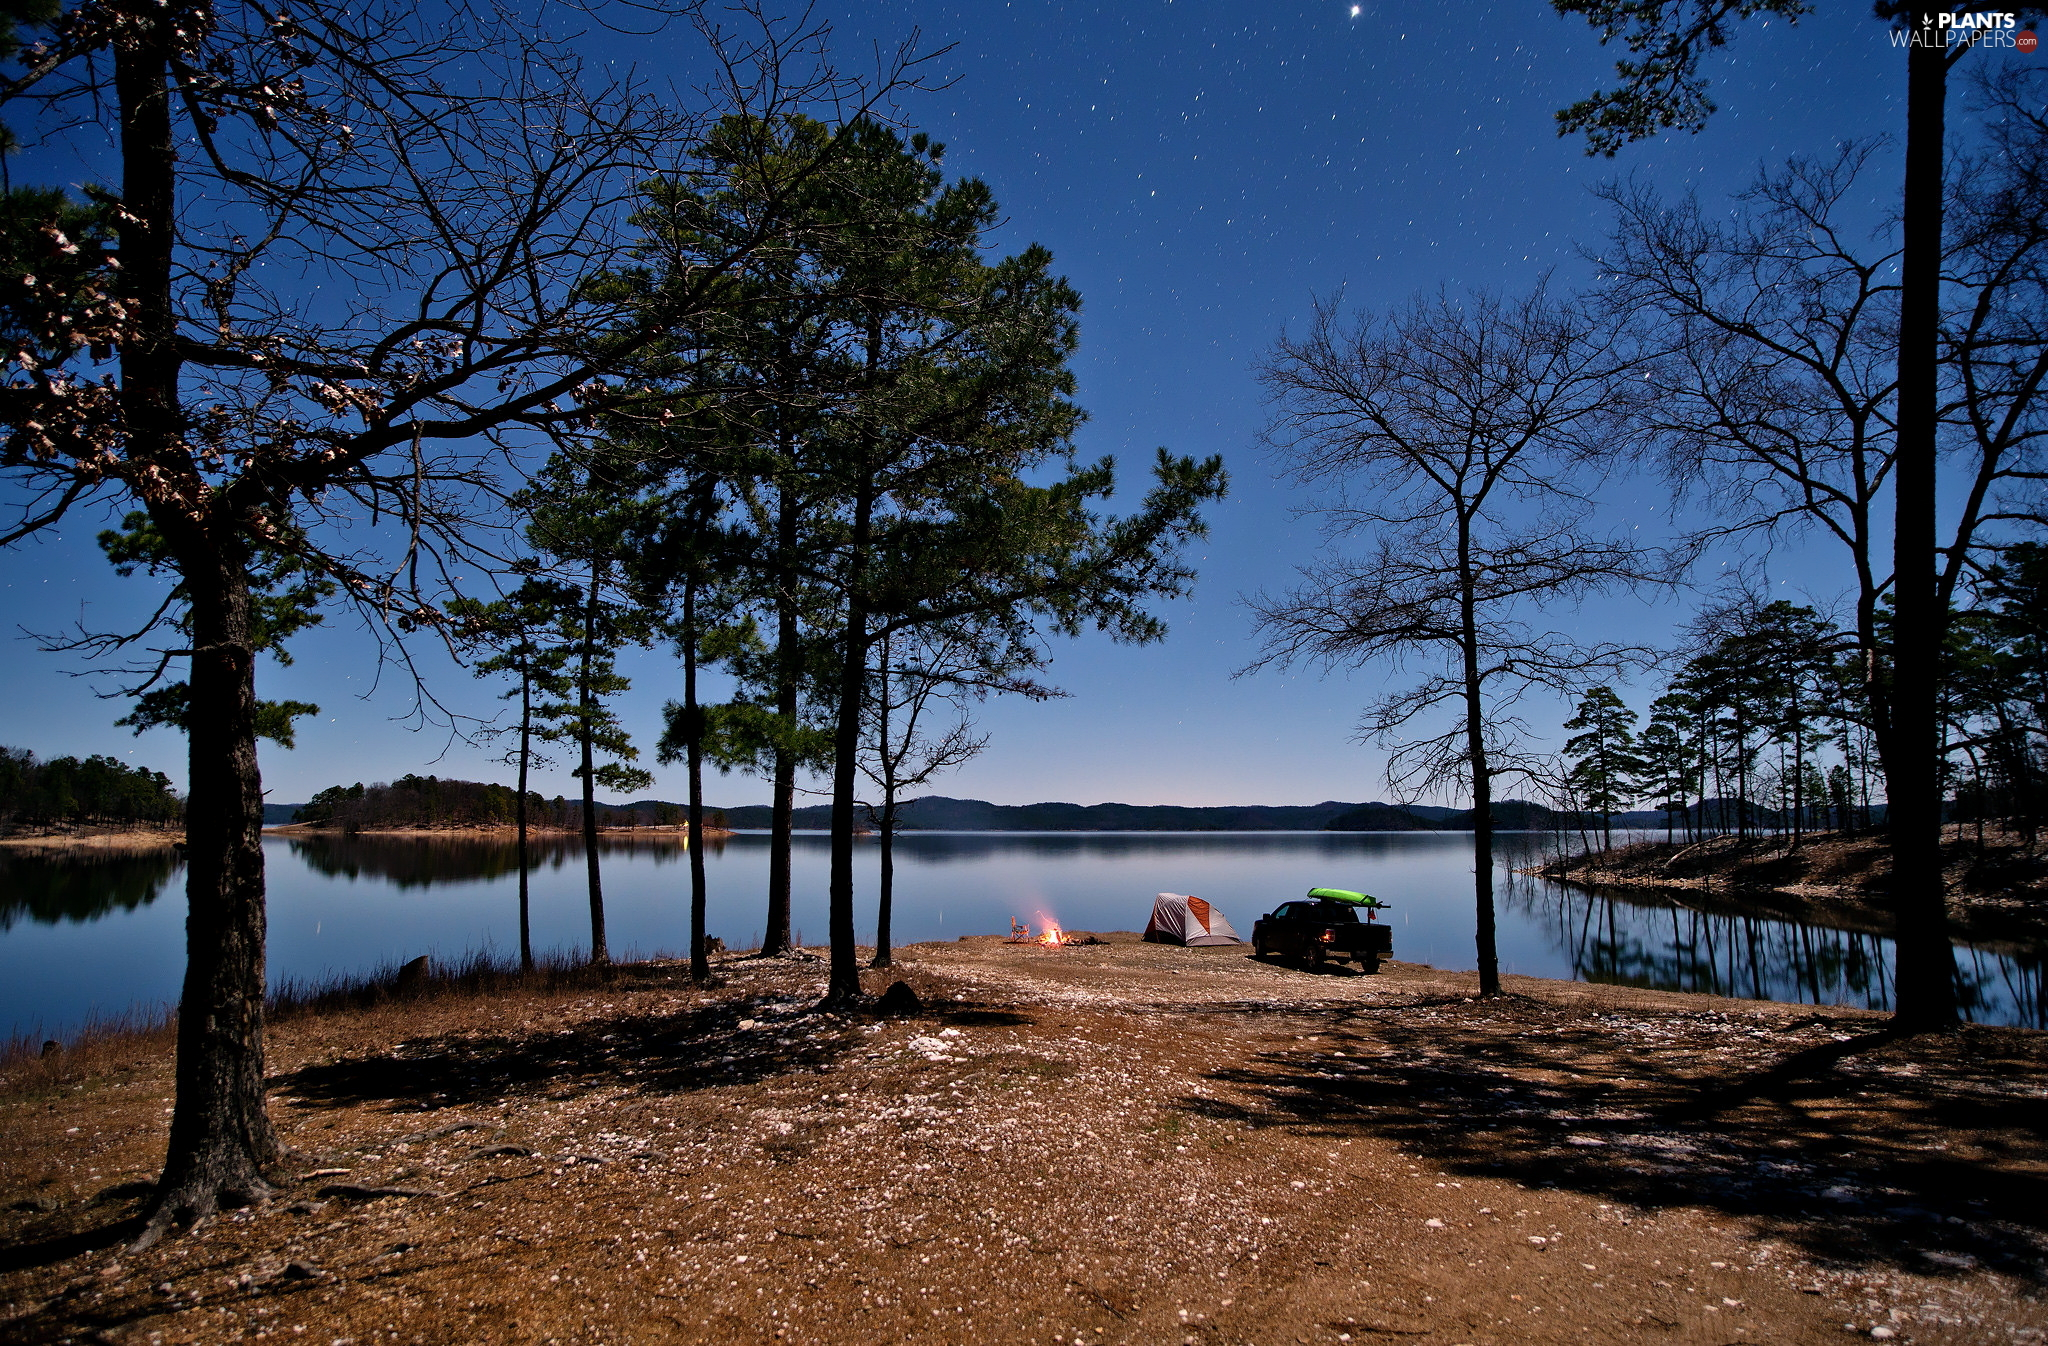 bivouac, fire, trees, viewes, lake